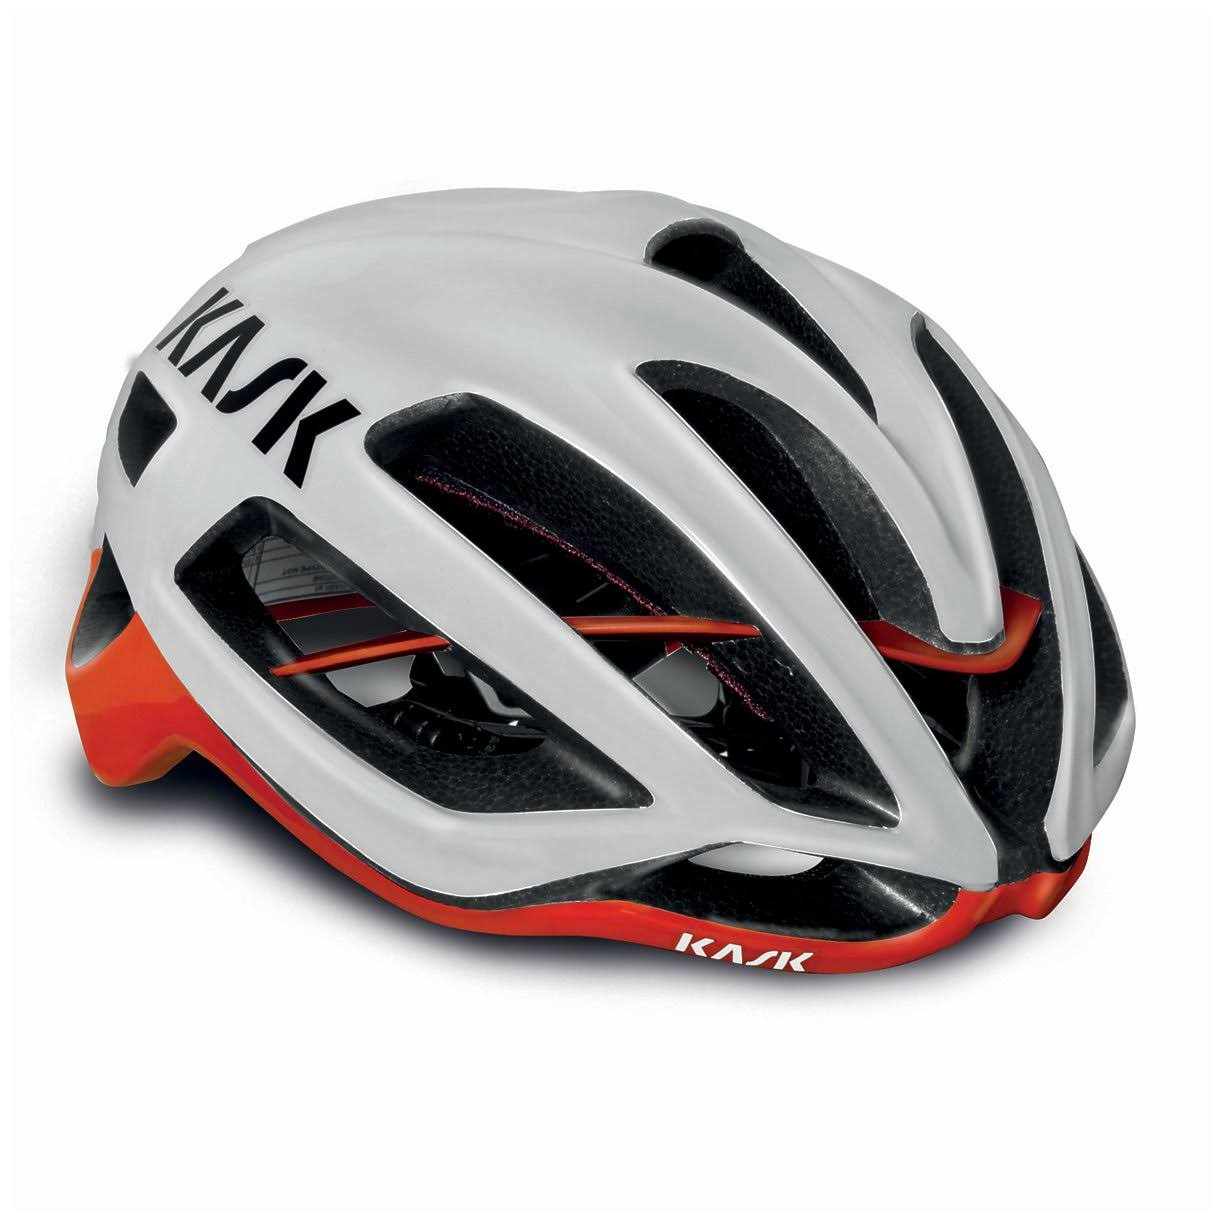 Kask Protone Road Cycling Helmet - White/Red, Large